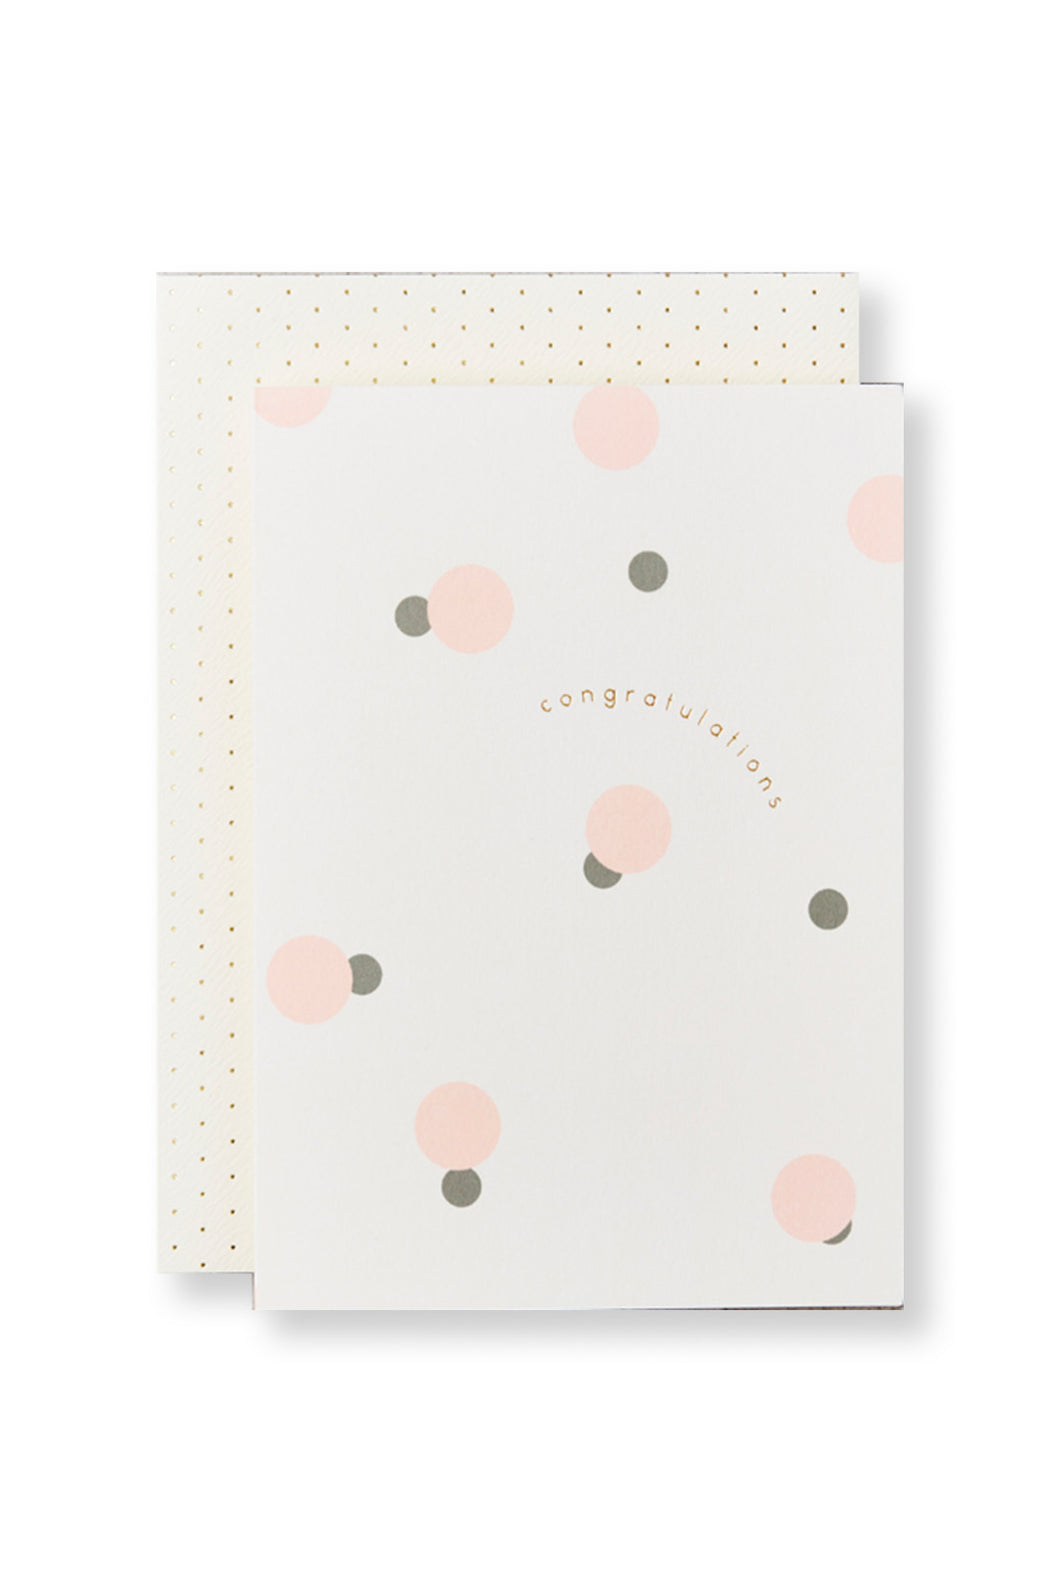 Katie Leamon - Single Card - Congratulations Polka